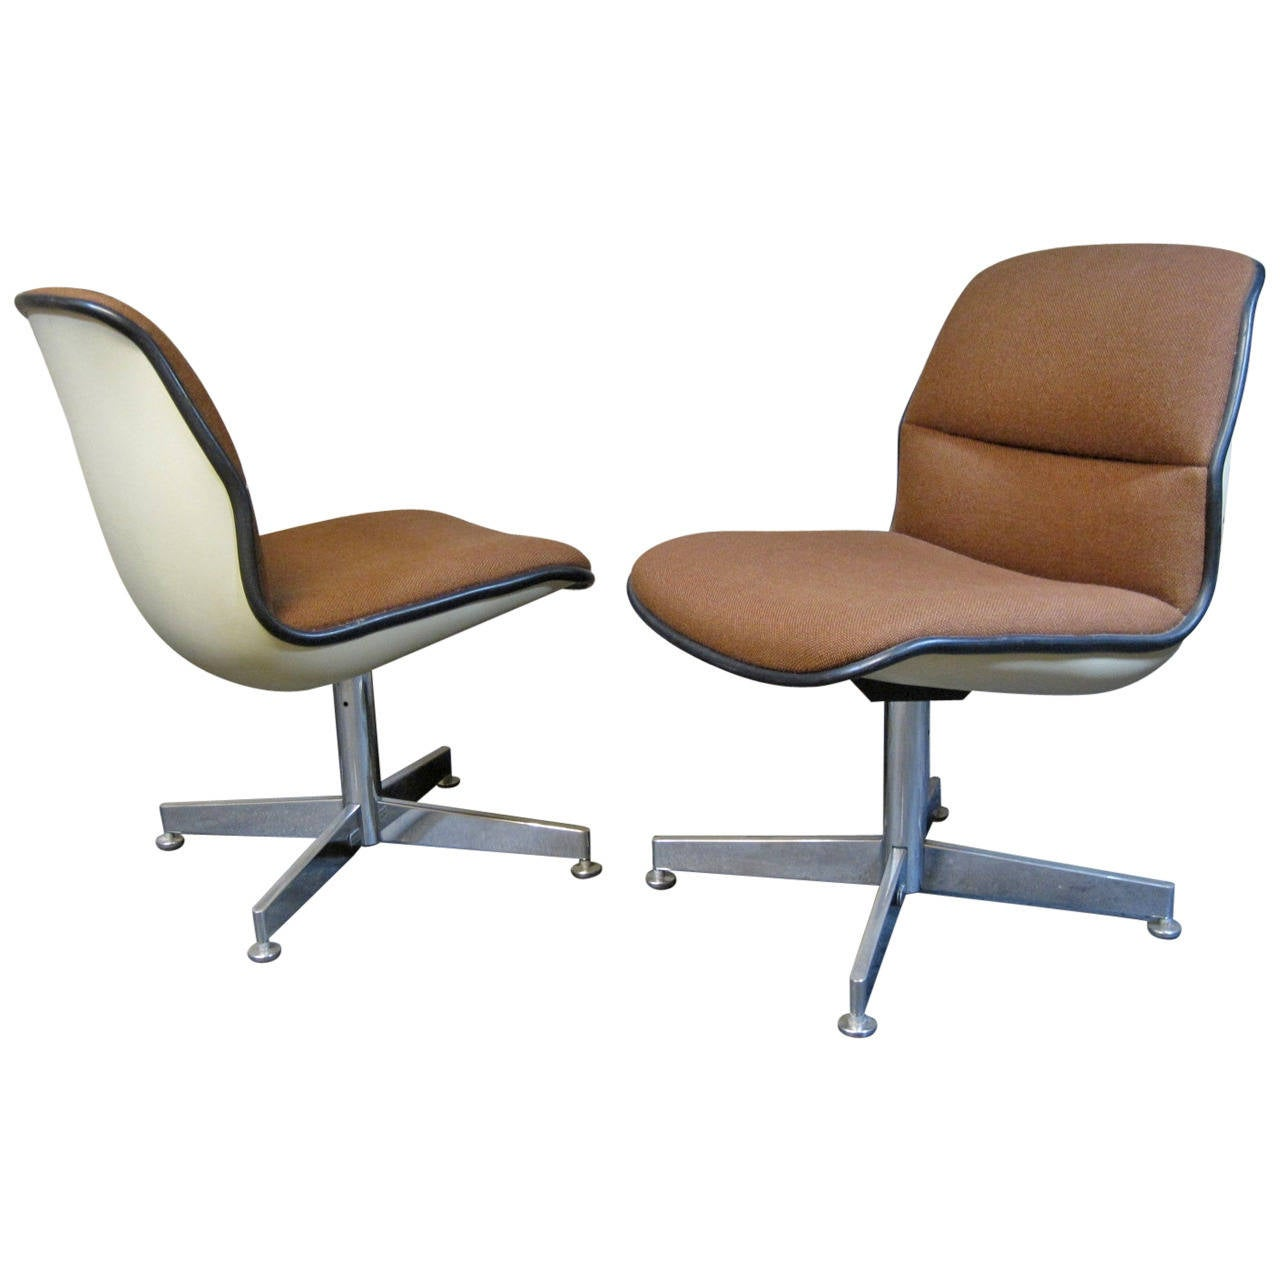 Charles Pollock Style Chairs, Mid-Century Modern At 1stdibs